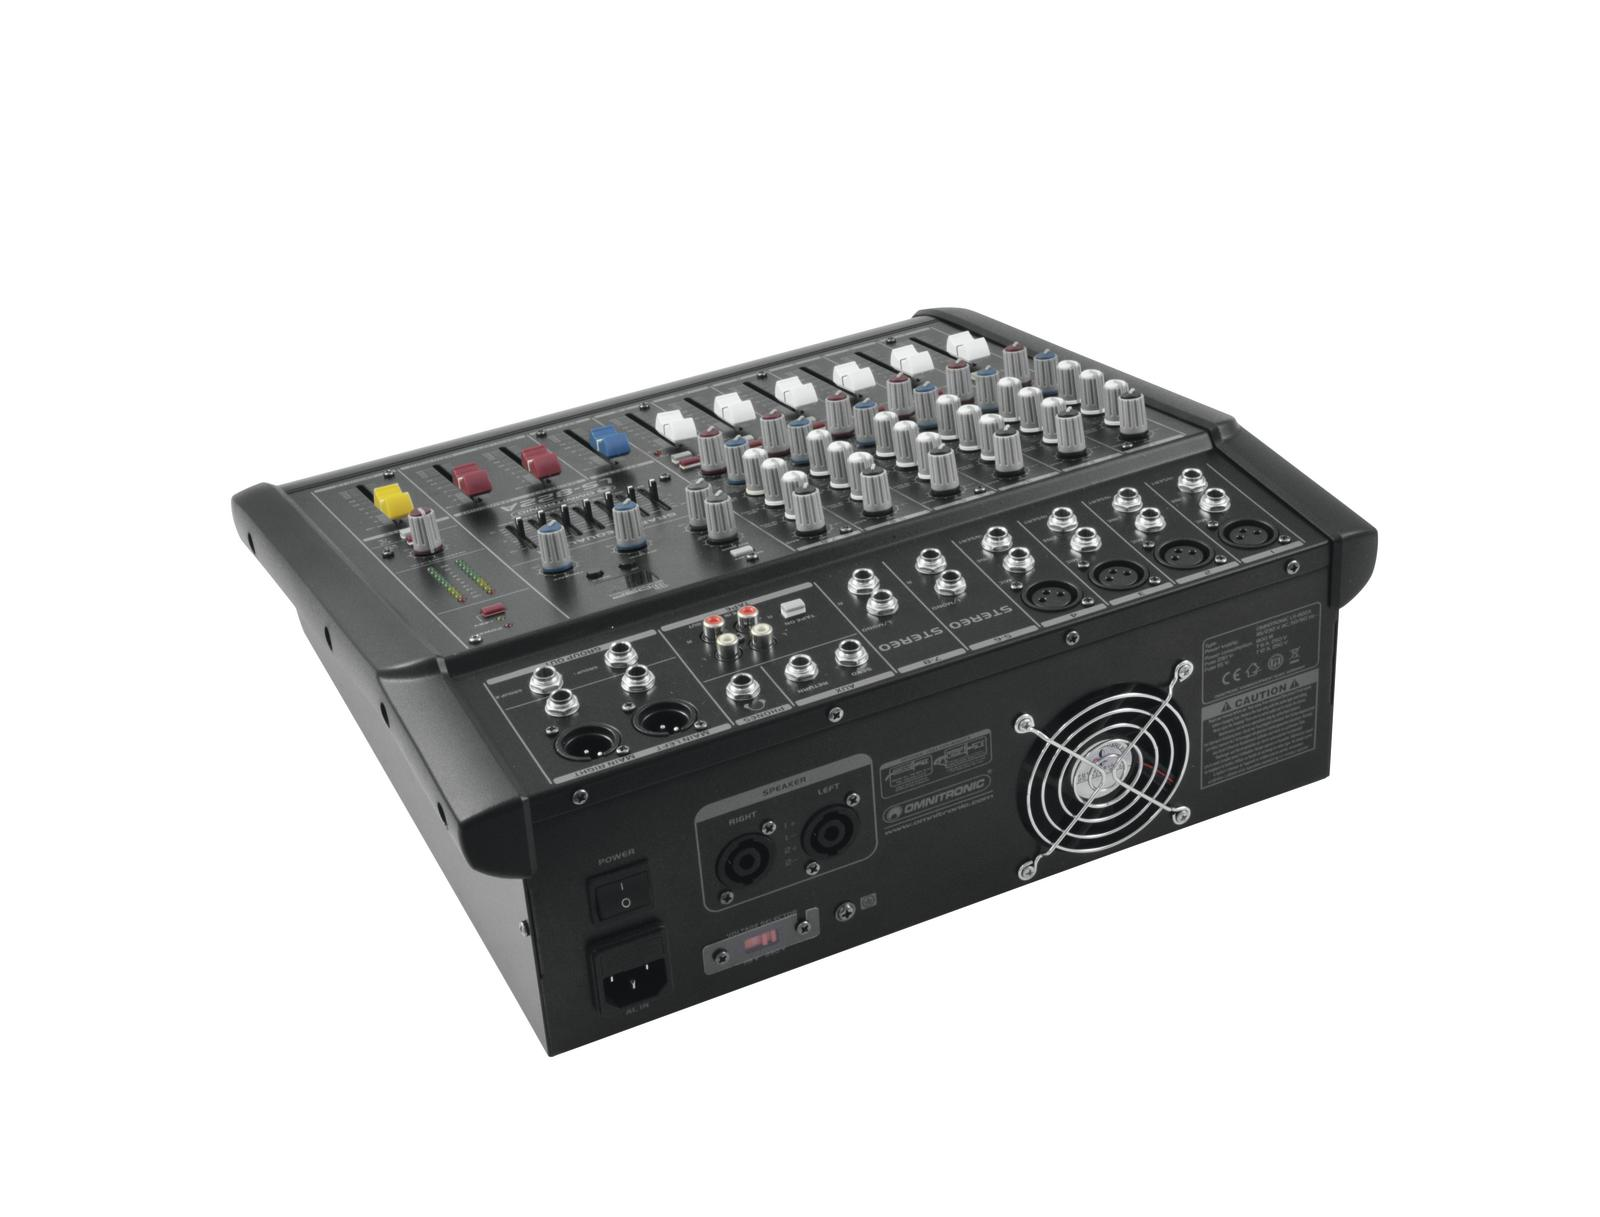 OMNITRONIC LS-822A Powered mixer live